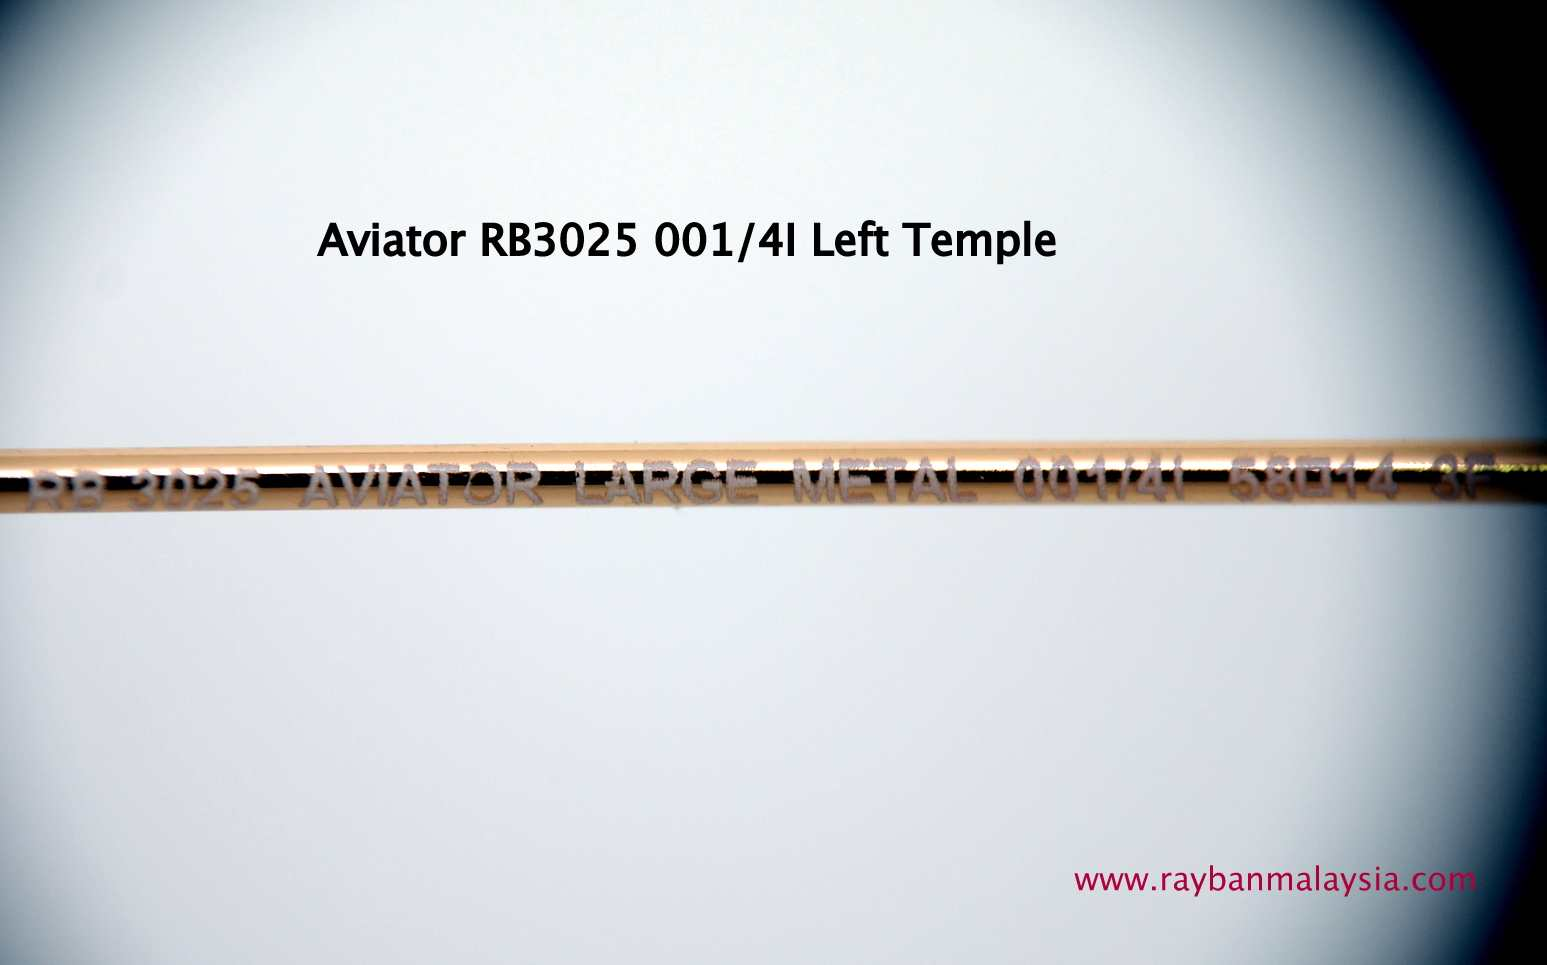 how to tell if ray ban aviator sunglasses are fake  genuine rayban aviator 001/4i left temple